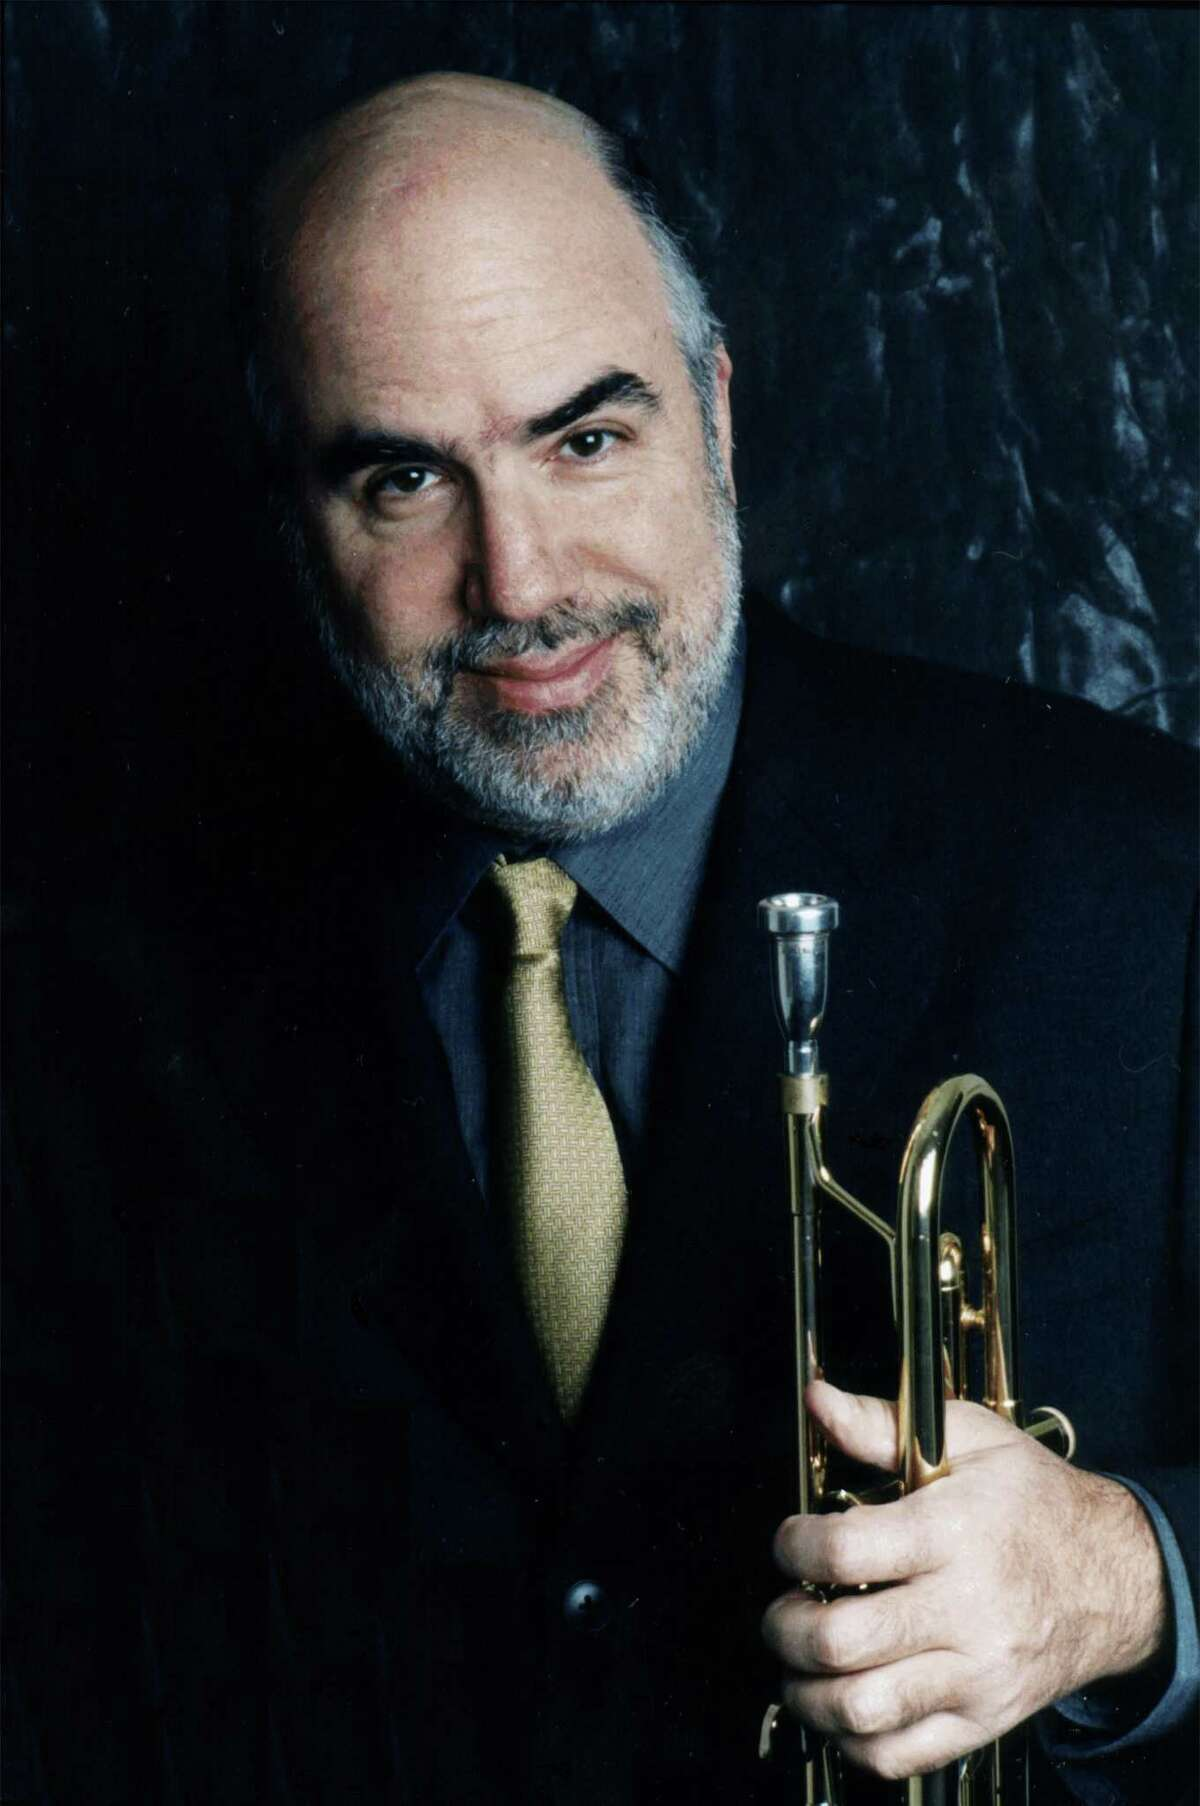 Jazz trumpeter Randy Brecker will perform in Dec. 16 as part of theBop Island Jazz Festival at the Woodstock Playhouse.